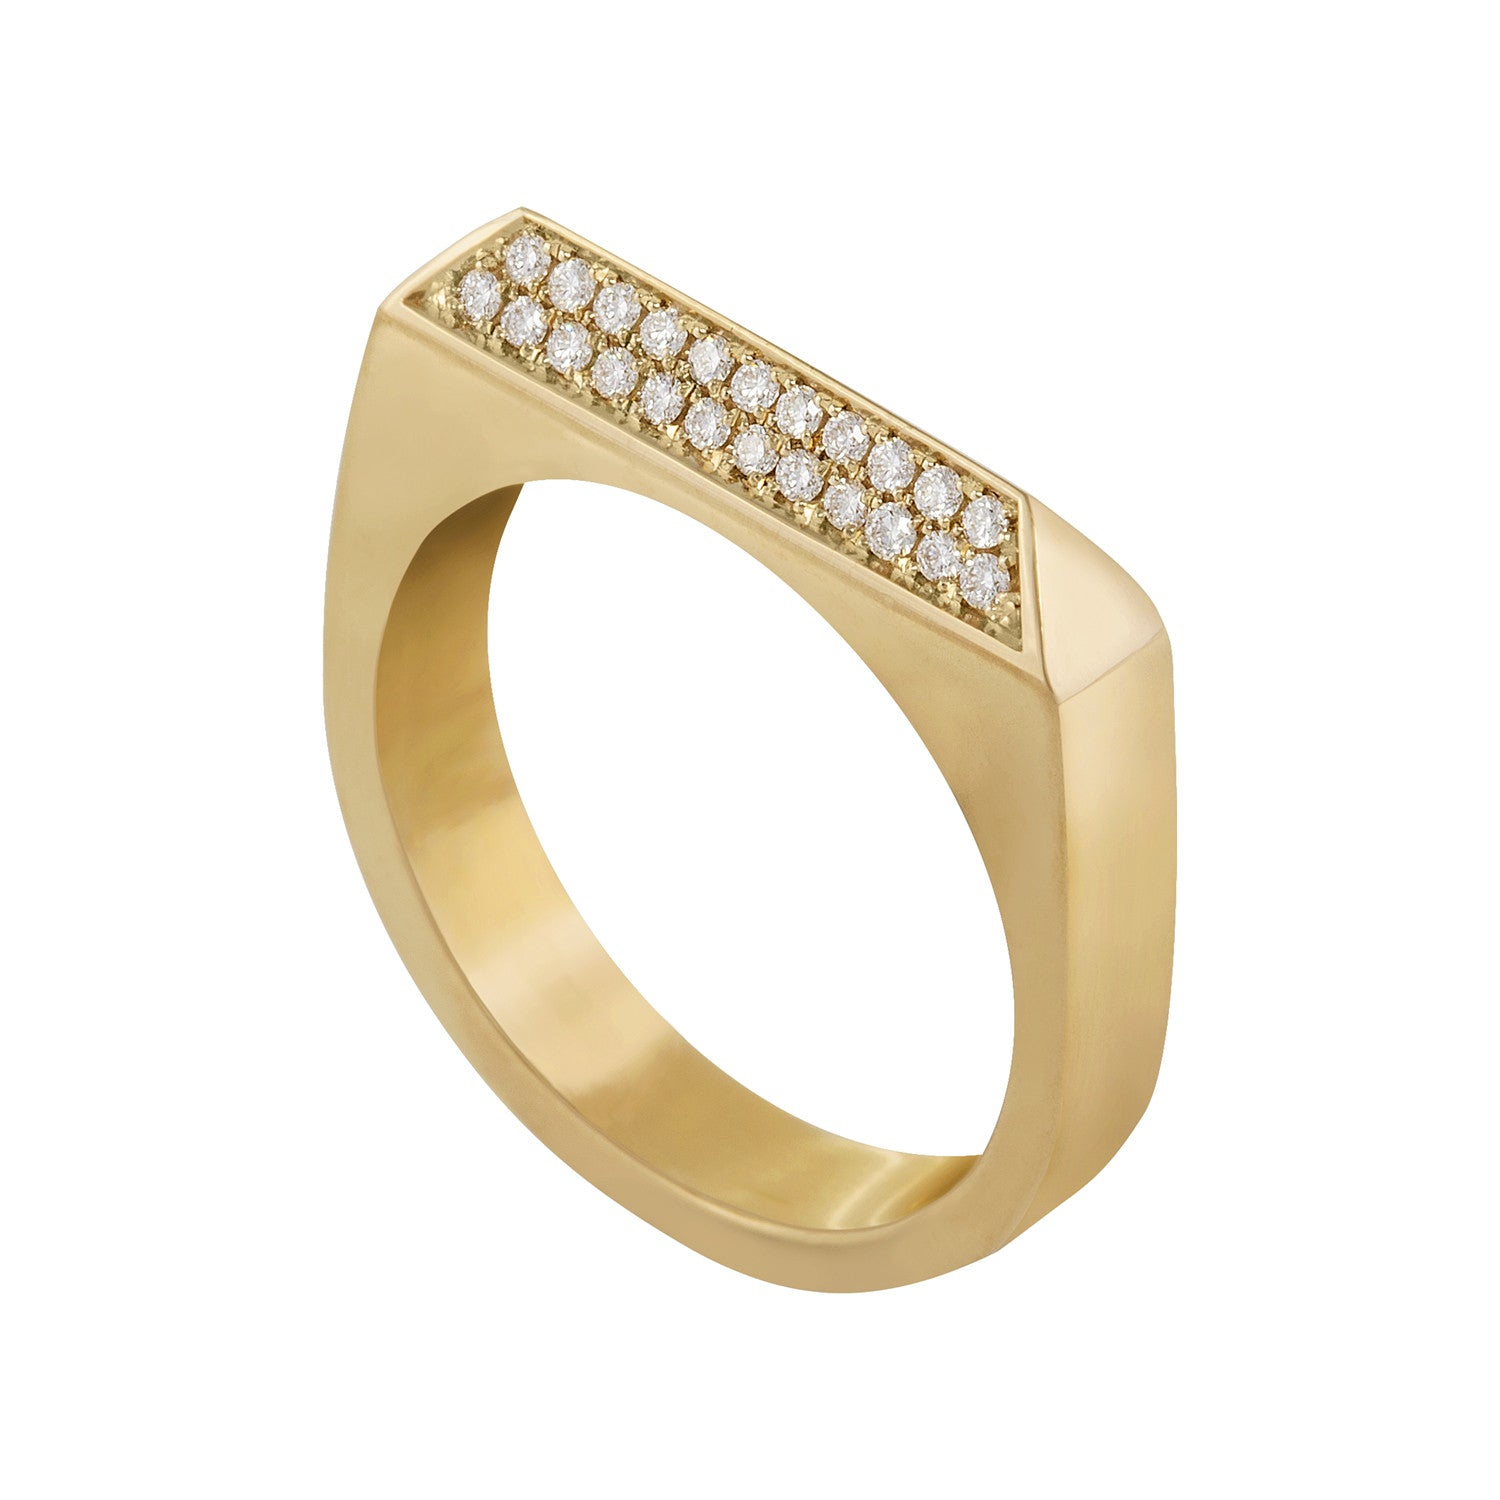 Double Diamond Rooftop Ring in 14 carat gold